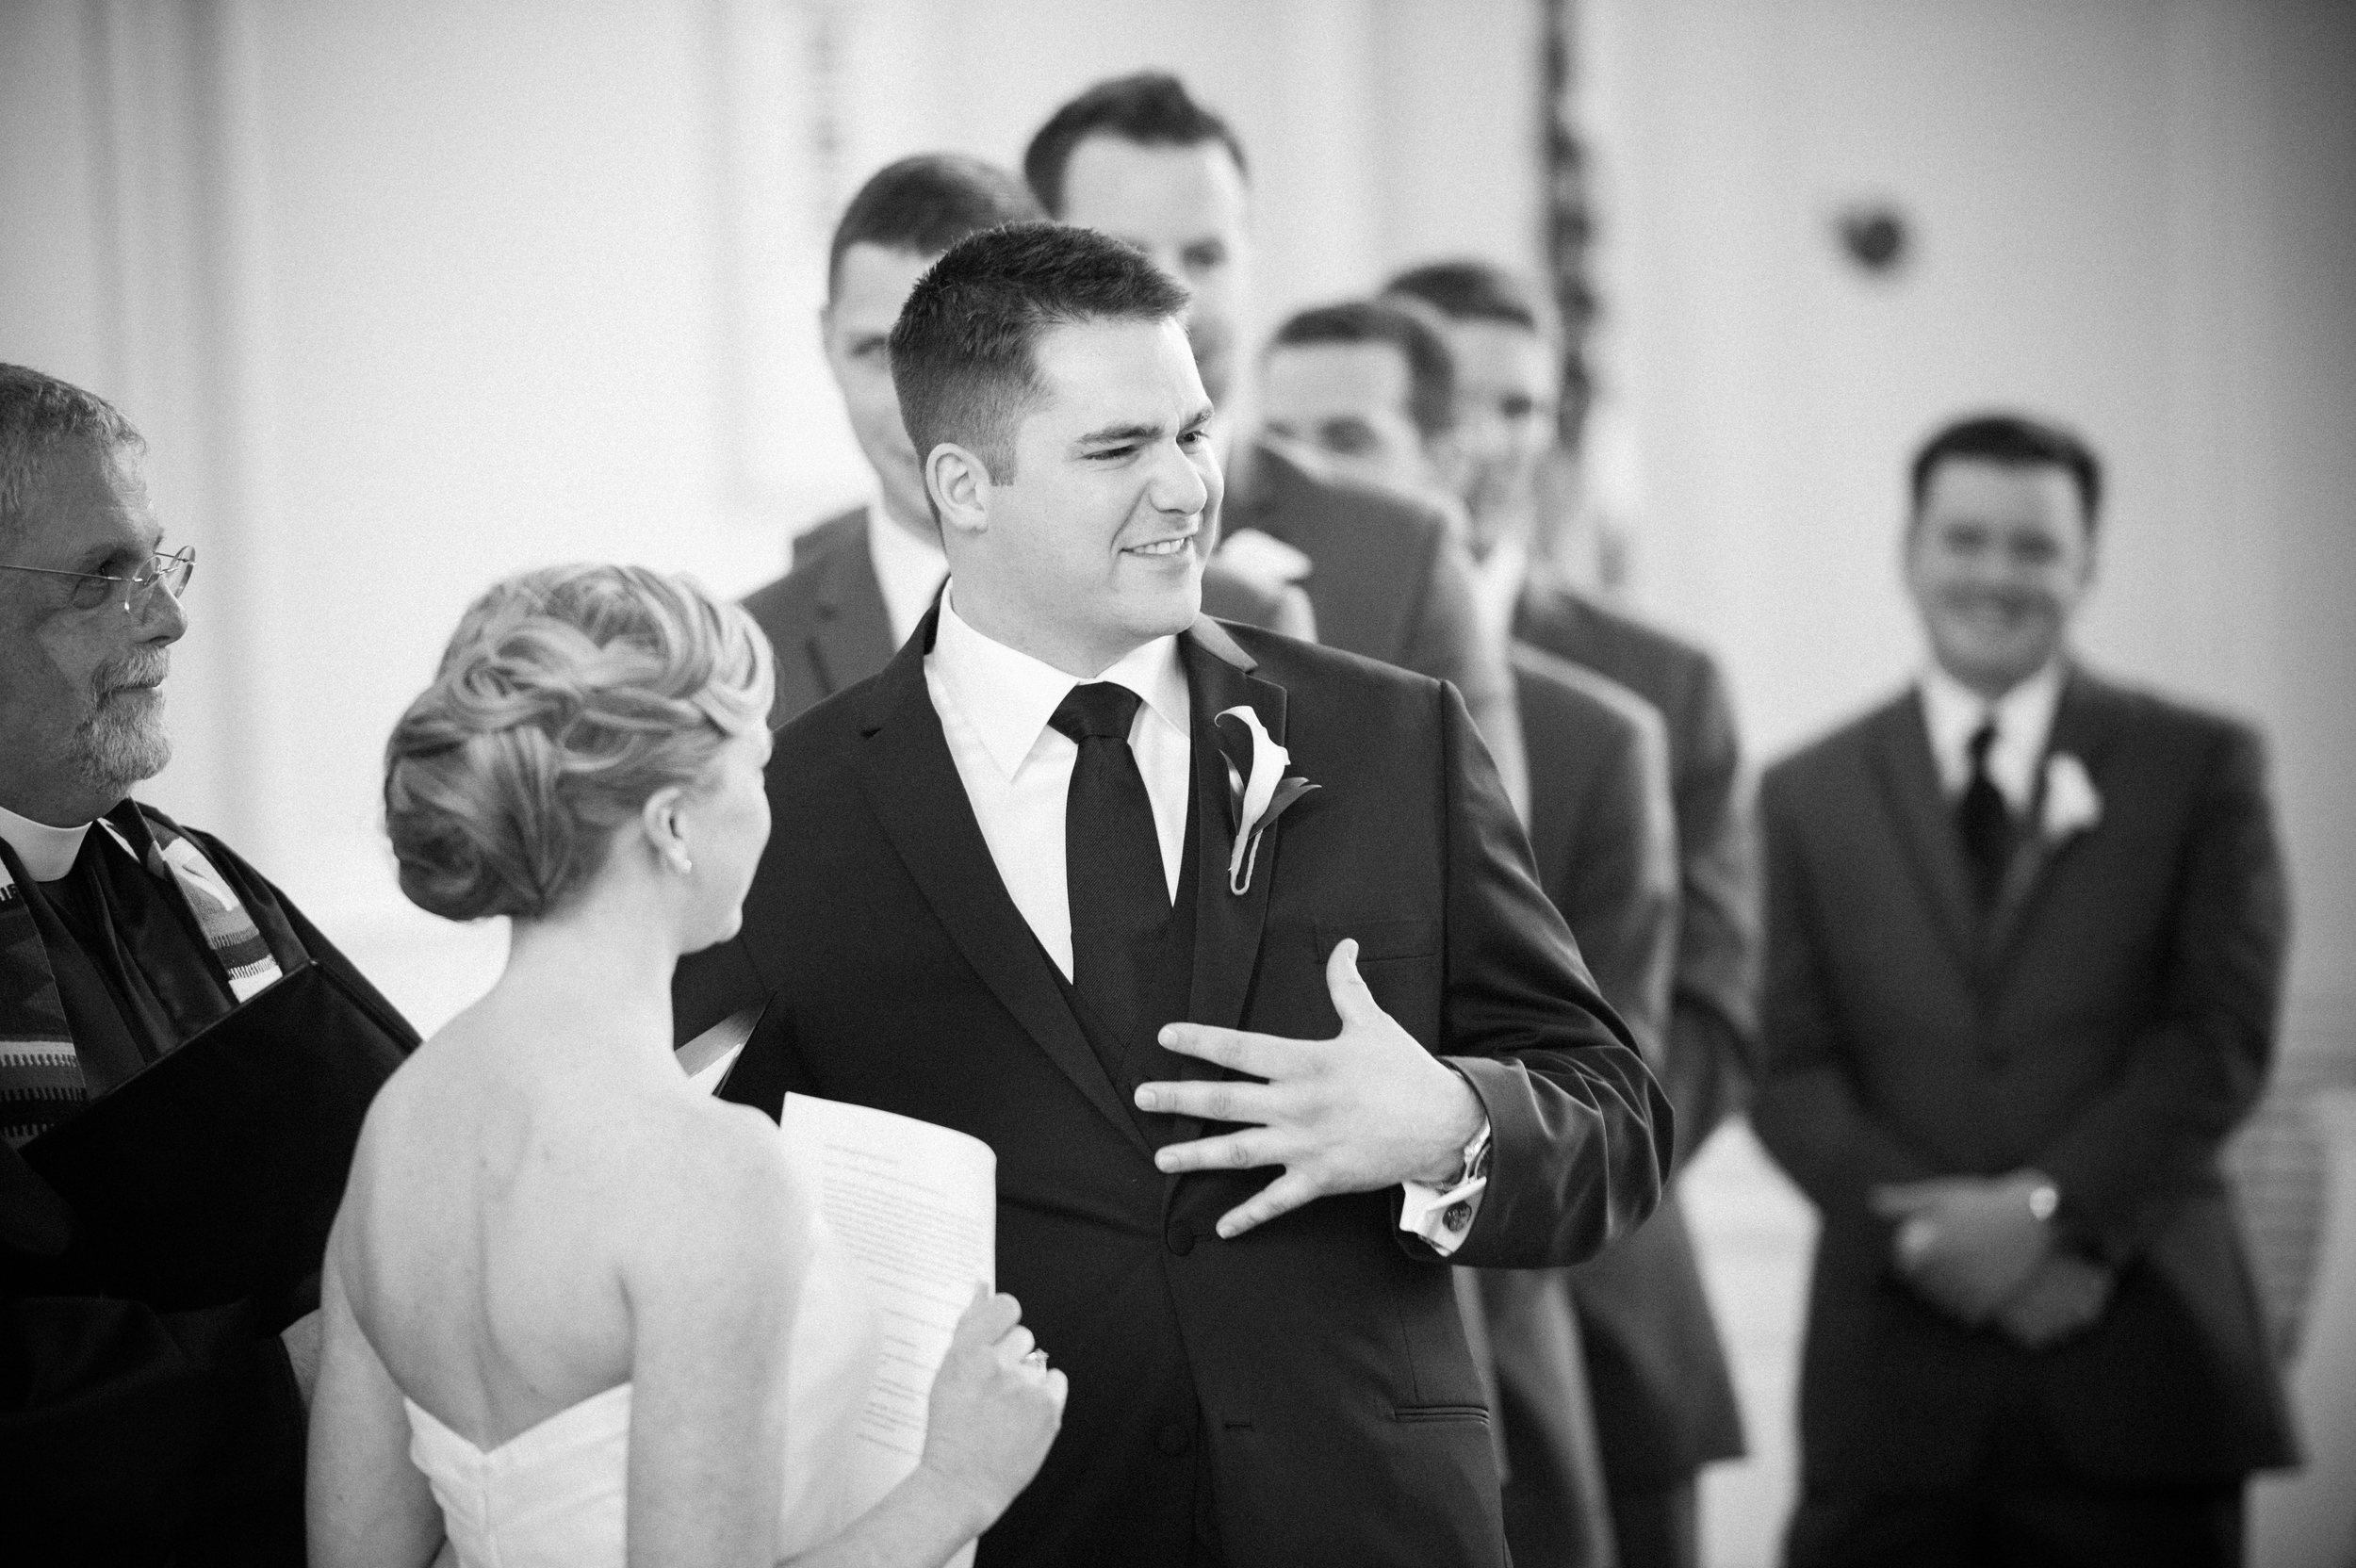 James had to stop the wedding to give the back story to the vows. Classic.